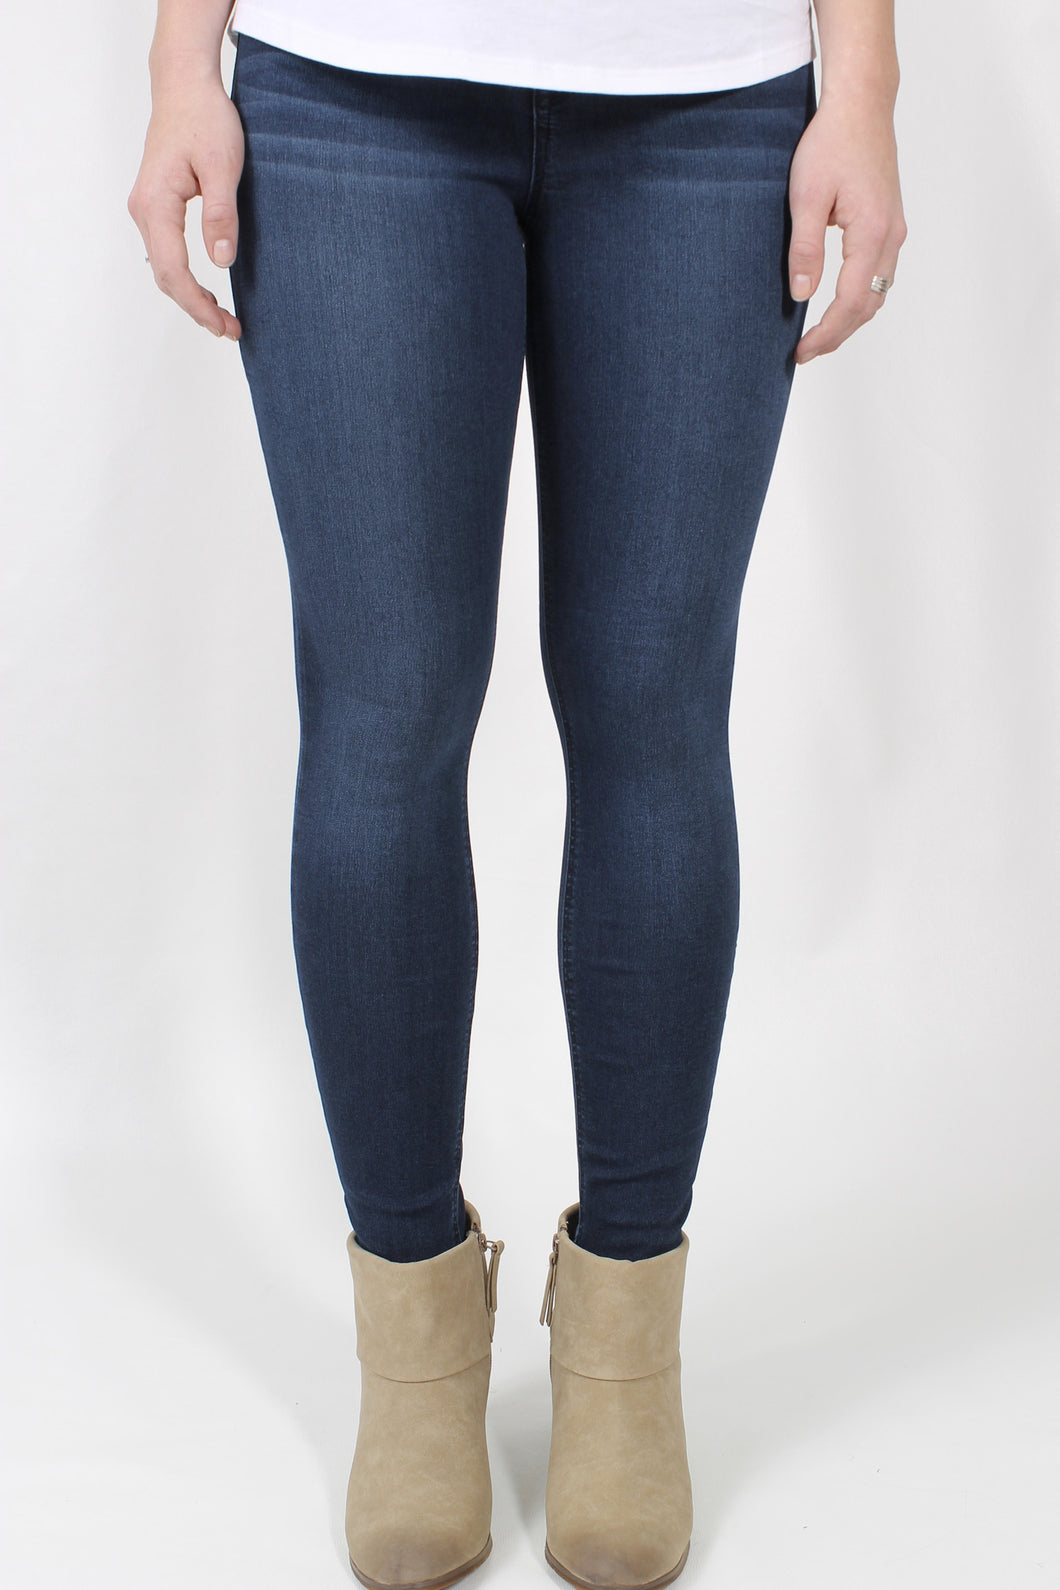 Nob Hill Jeans- Level 99 Janice Mid-Rise Ultra Skinny Front